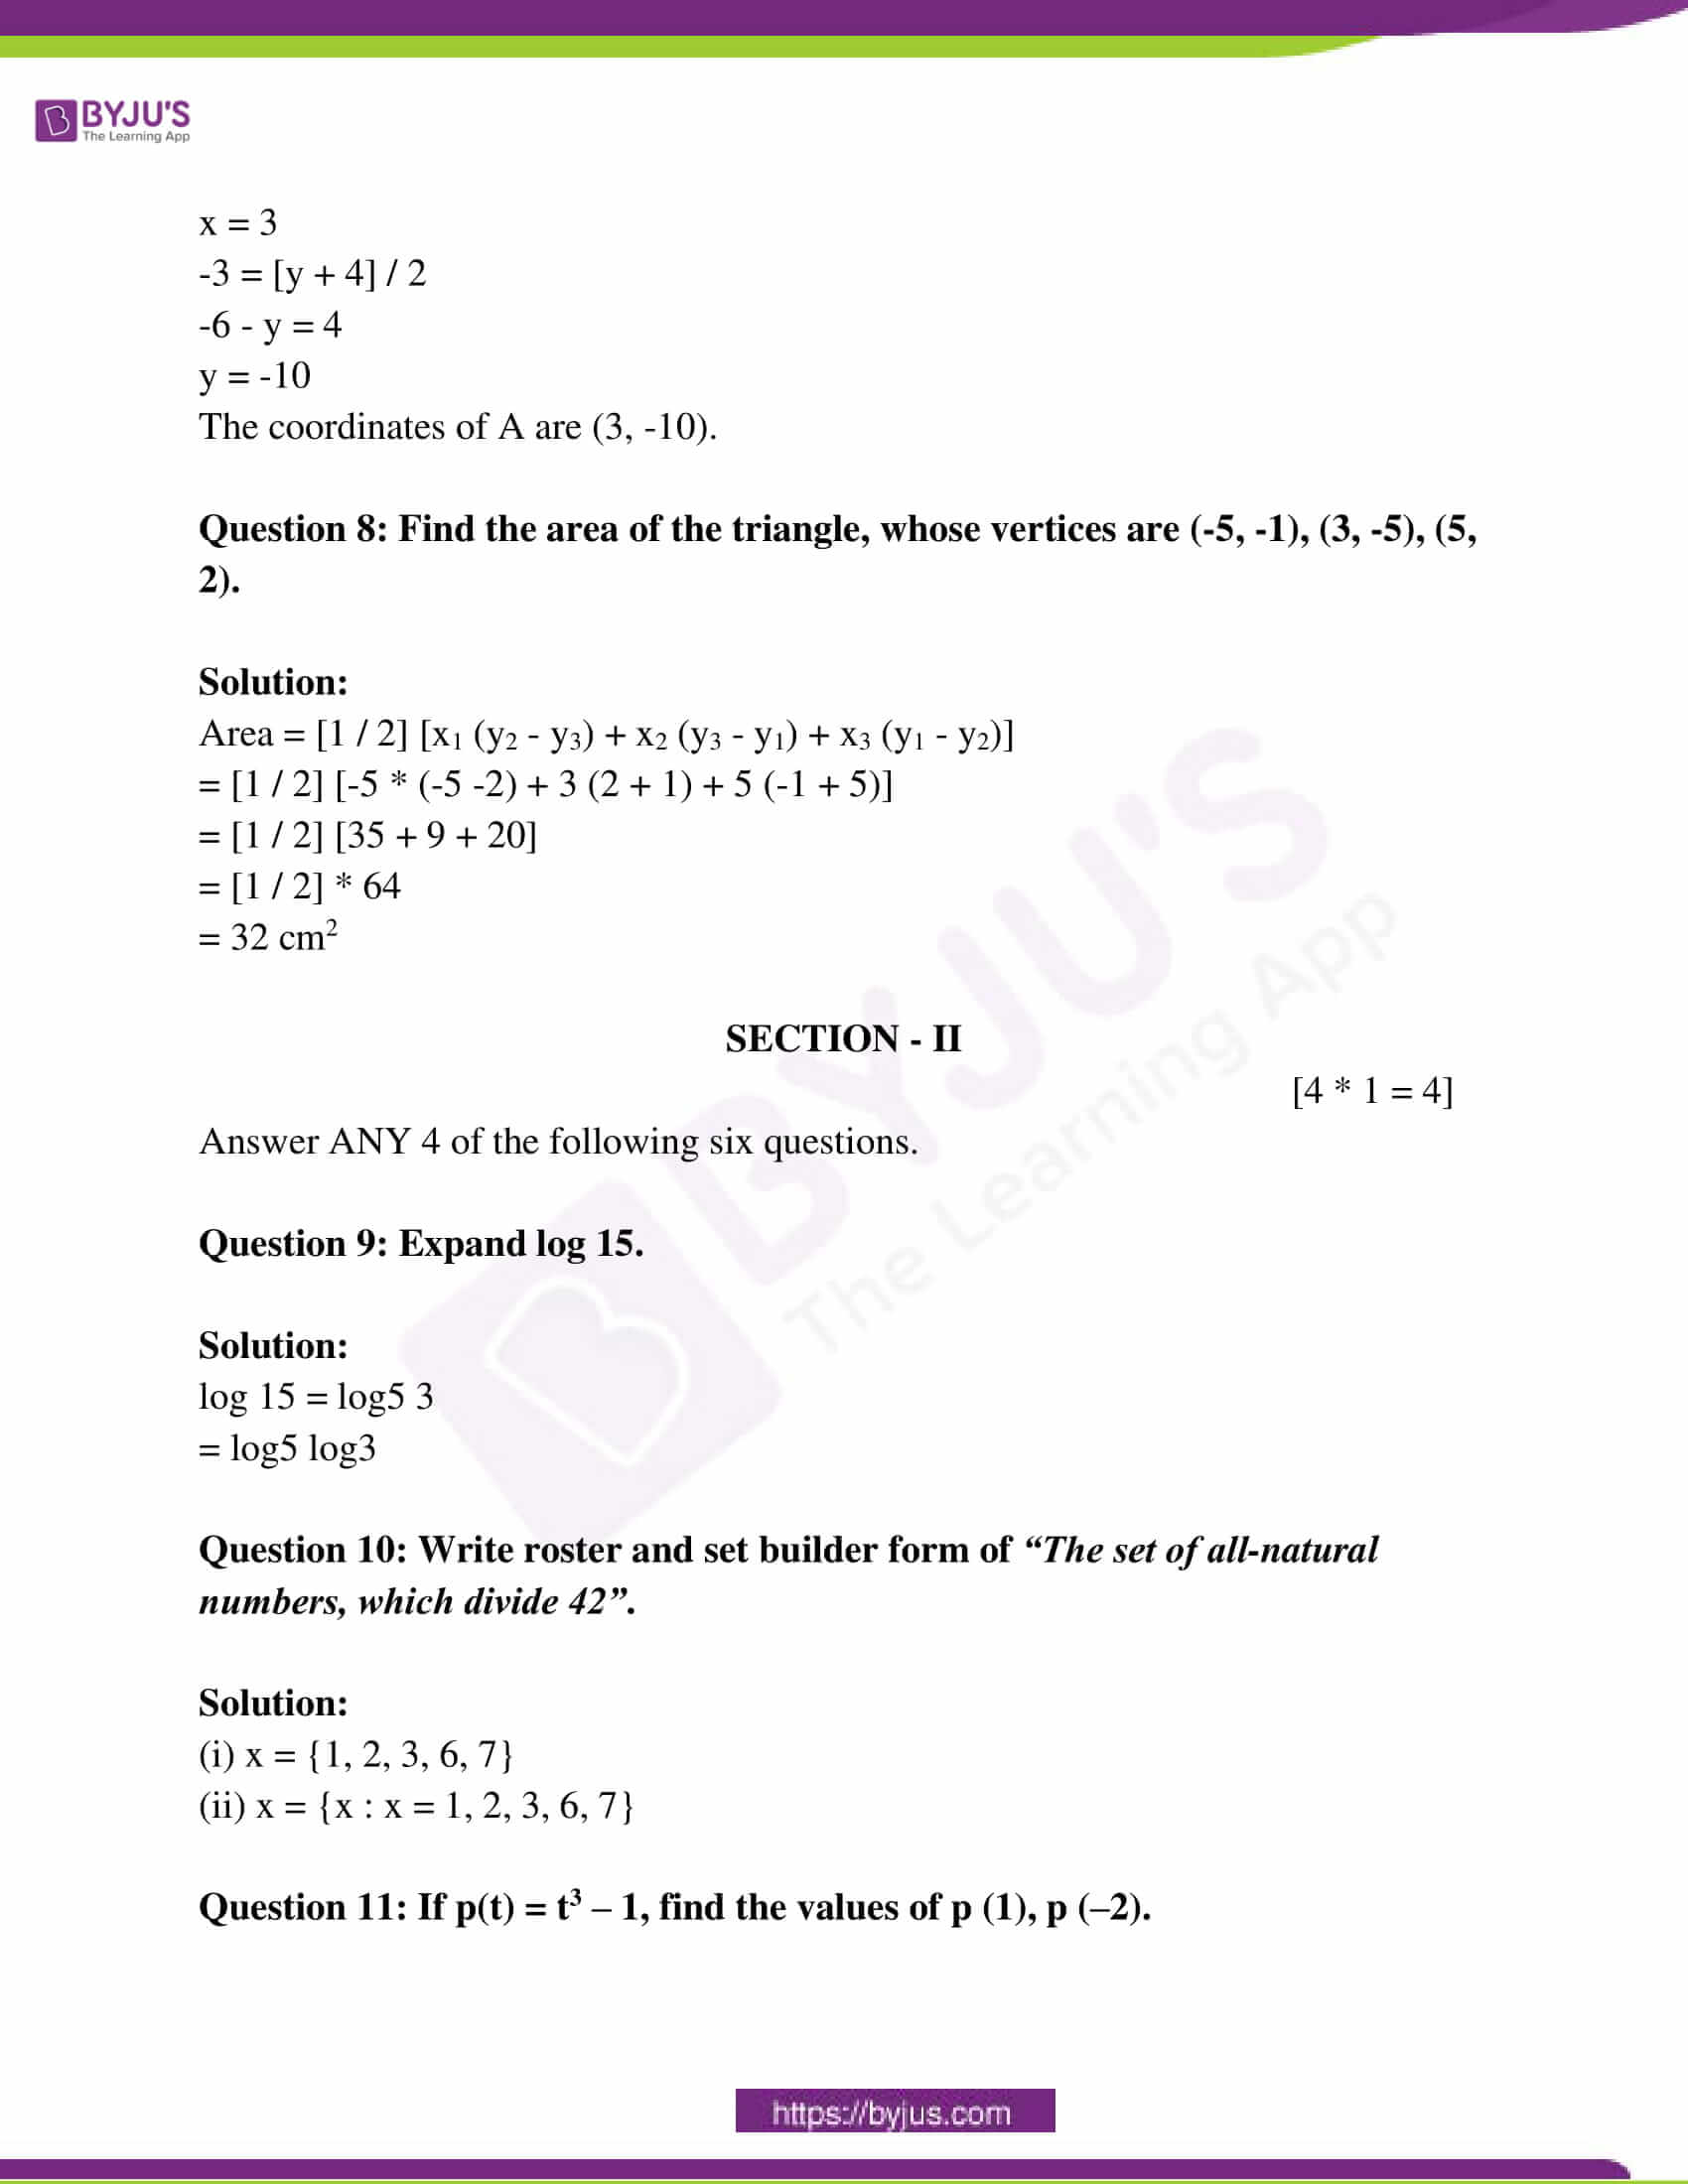 ap class 10 maths question paper 1 sol march 2015 05